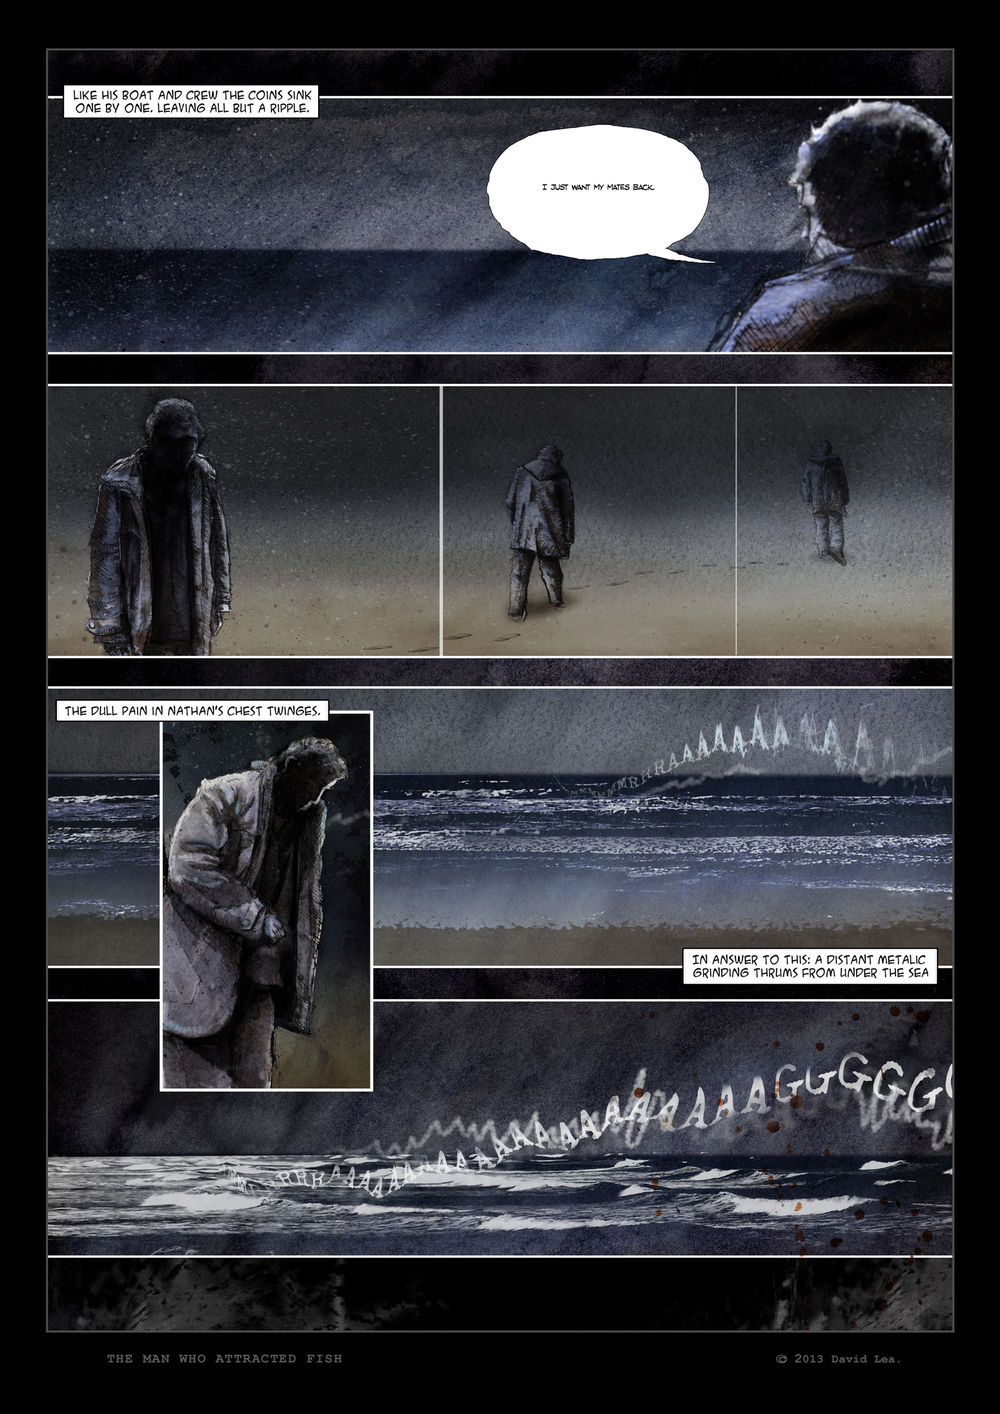 TMWAF_Graphic novel scene - page 3